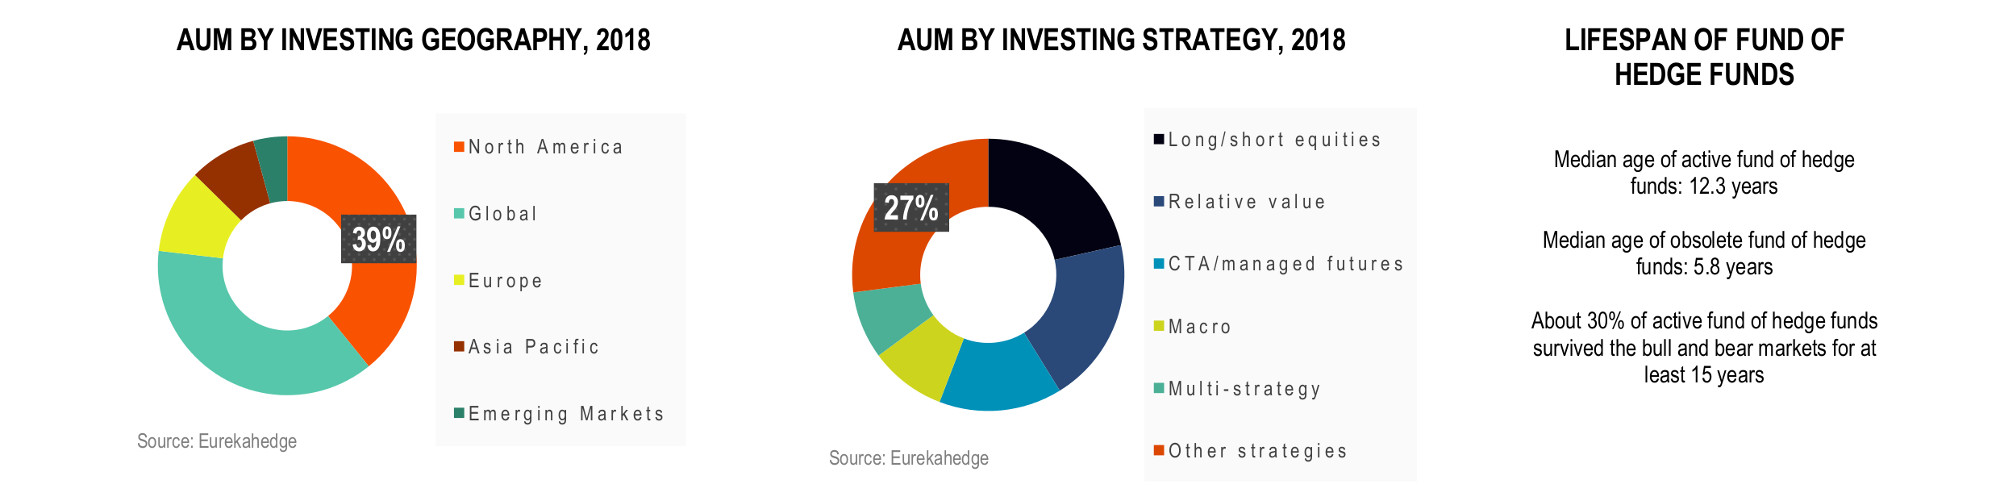 Global Funds of Hedge Funds Infographic June 2018 - aum by investing geography, strategy and lifespan